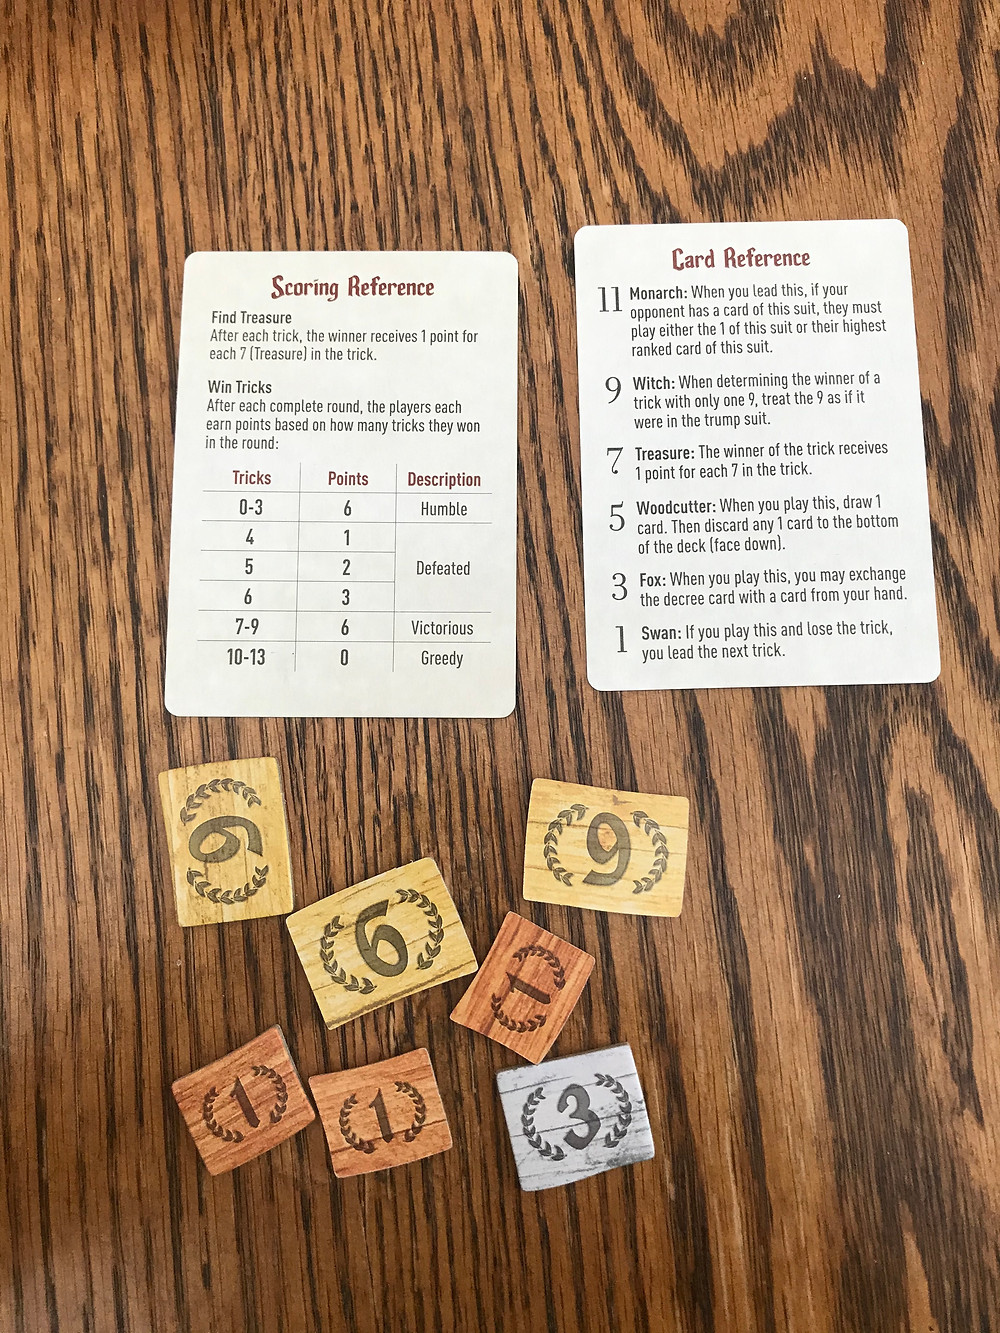 You definitely want to keep that scoring reference card handy while you're playing. It's easy to forget if you need to win or lose a trick!